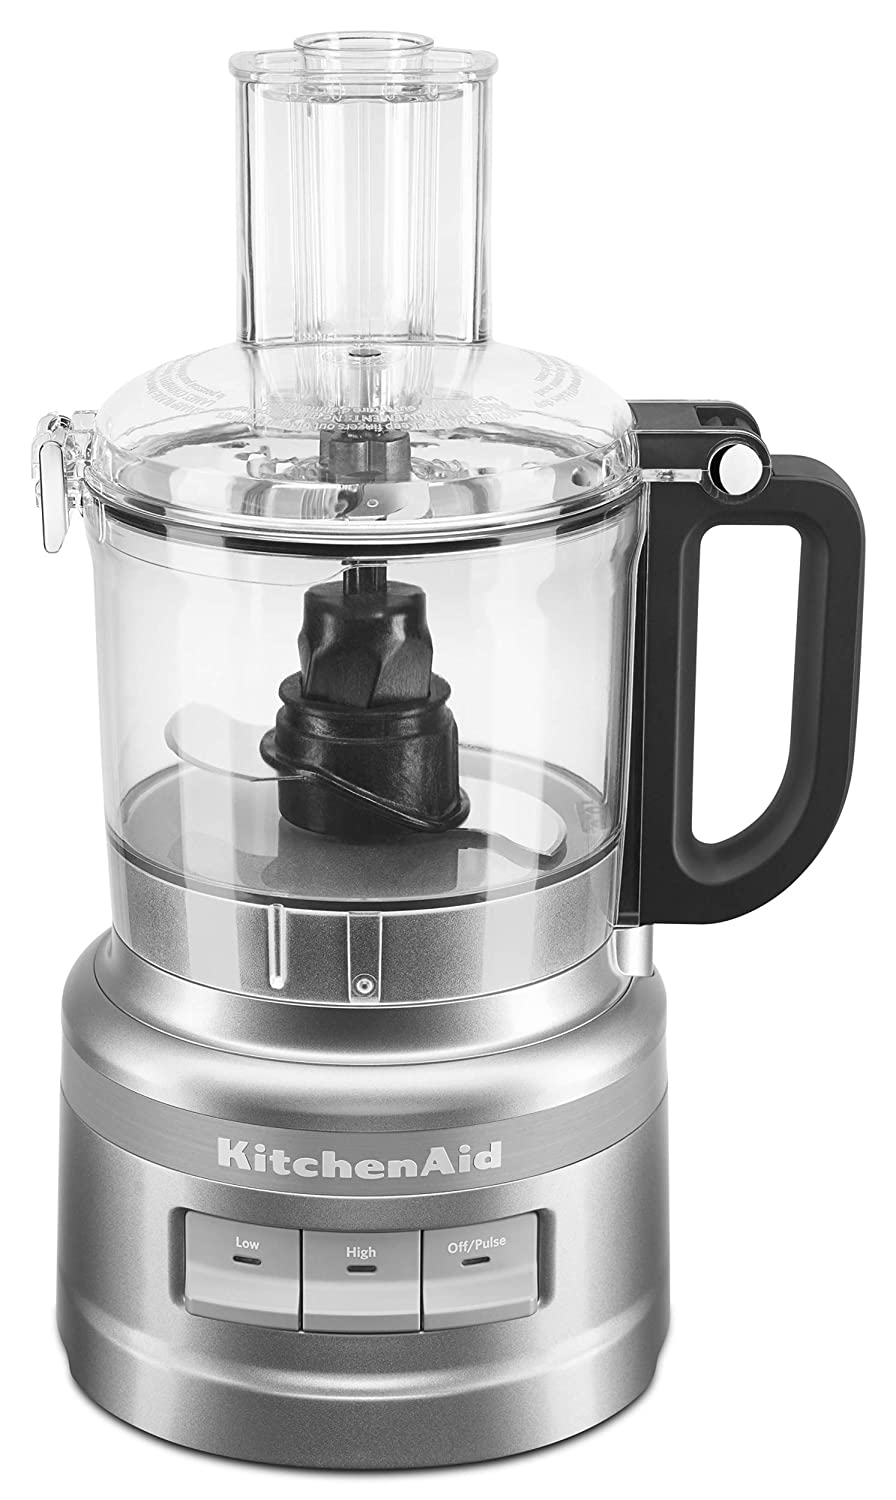 KitchenAid KFP0718CU 7-Cup Food Processor Chop, Puree, Shred and Slice - Contour Silver (Certified Refurbished)